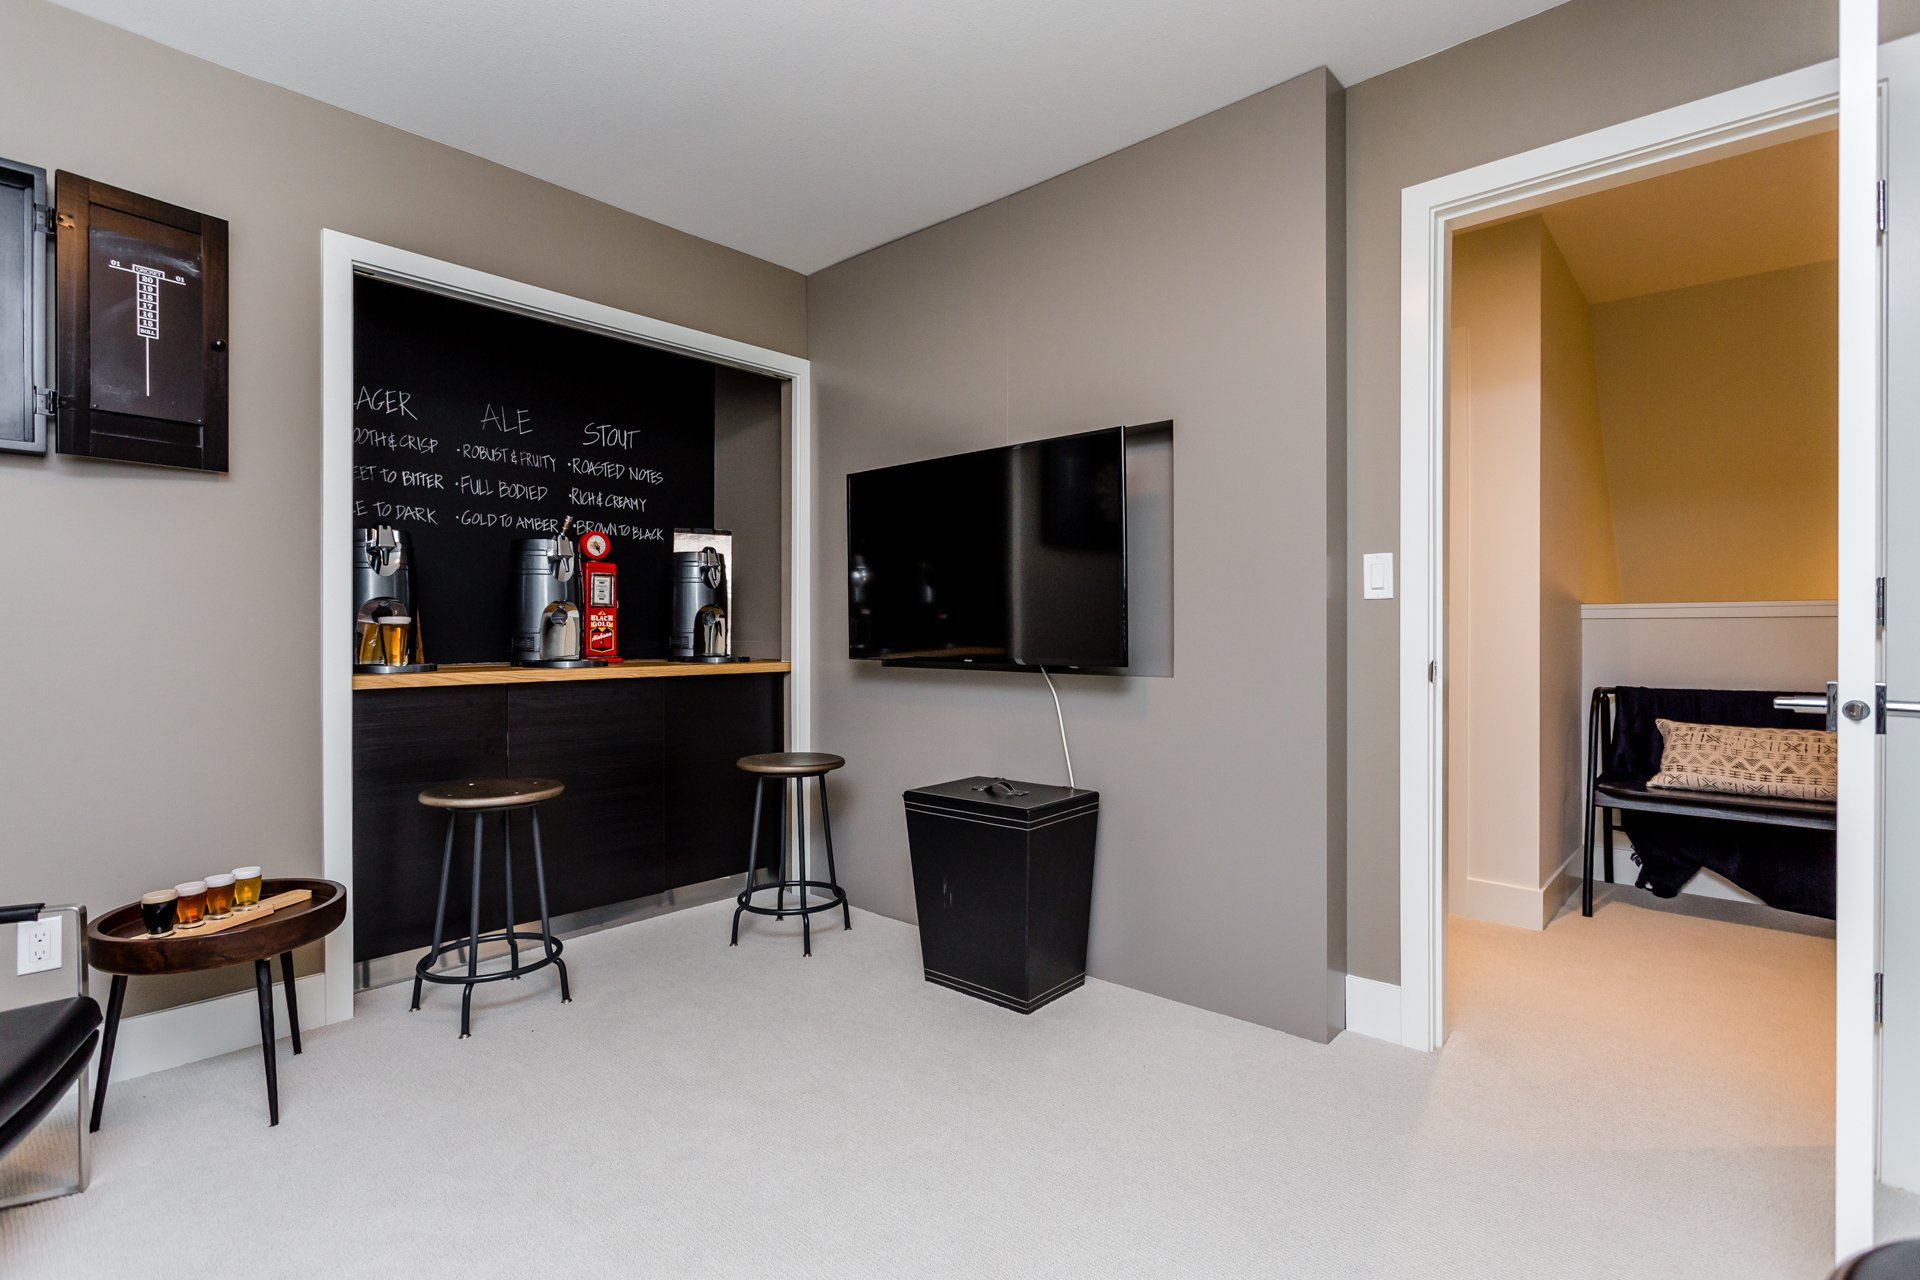 """Photo 31: Photos: 8 8217 204B Street in Langley: Willoughby Heights Townhouse for sale in """"EVERLY GREEN"""" : MLS®# R2236678"""